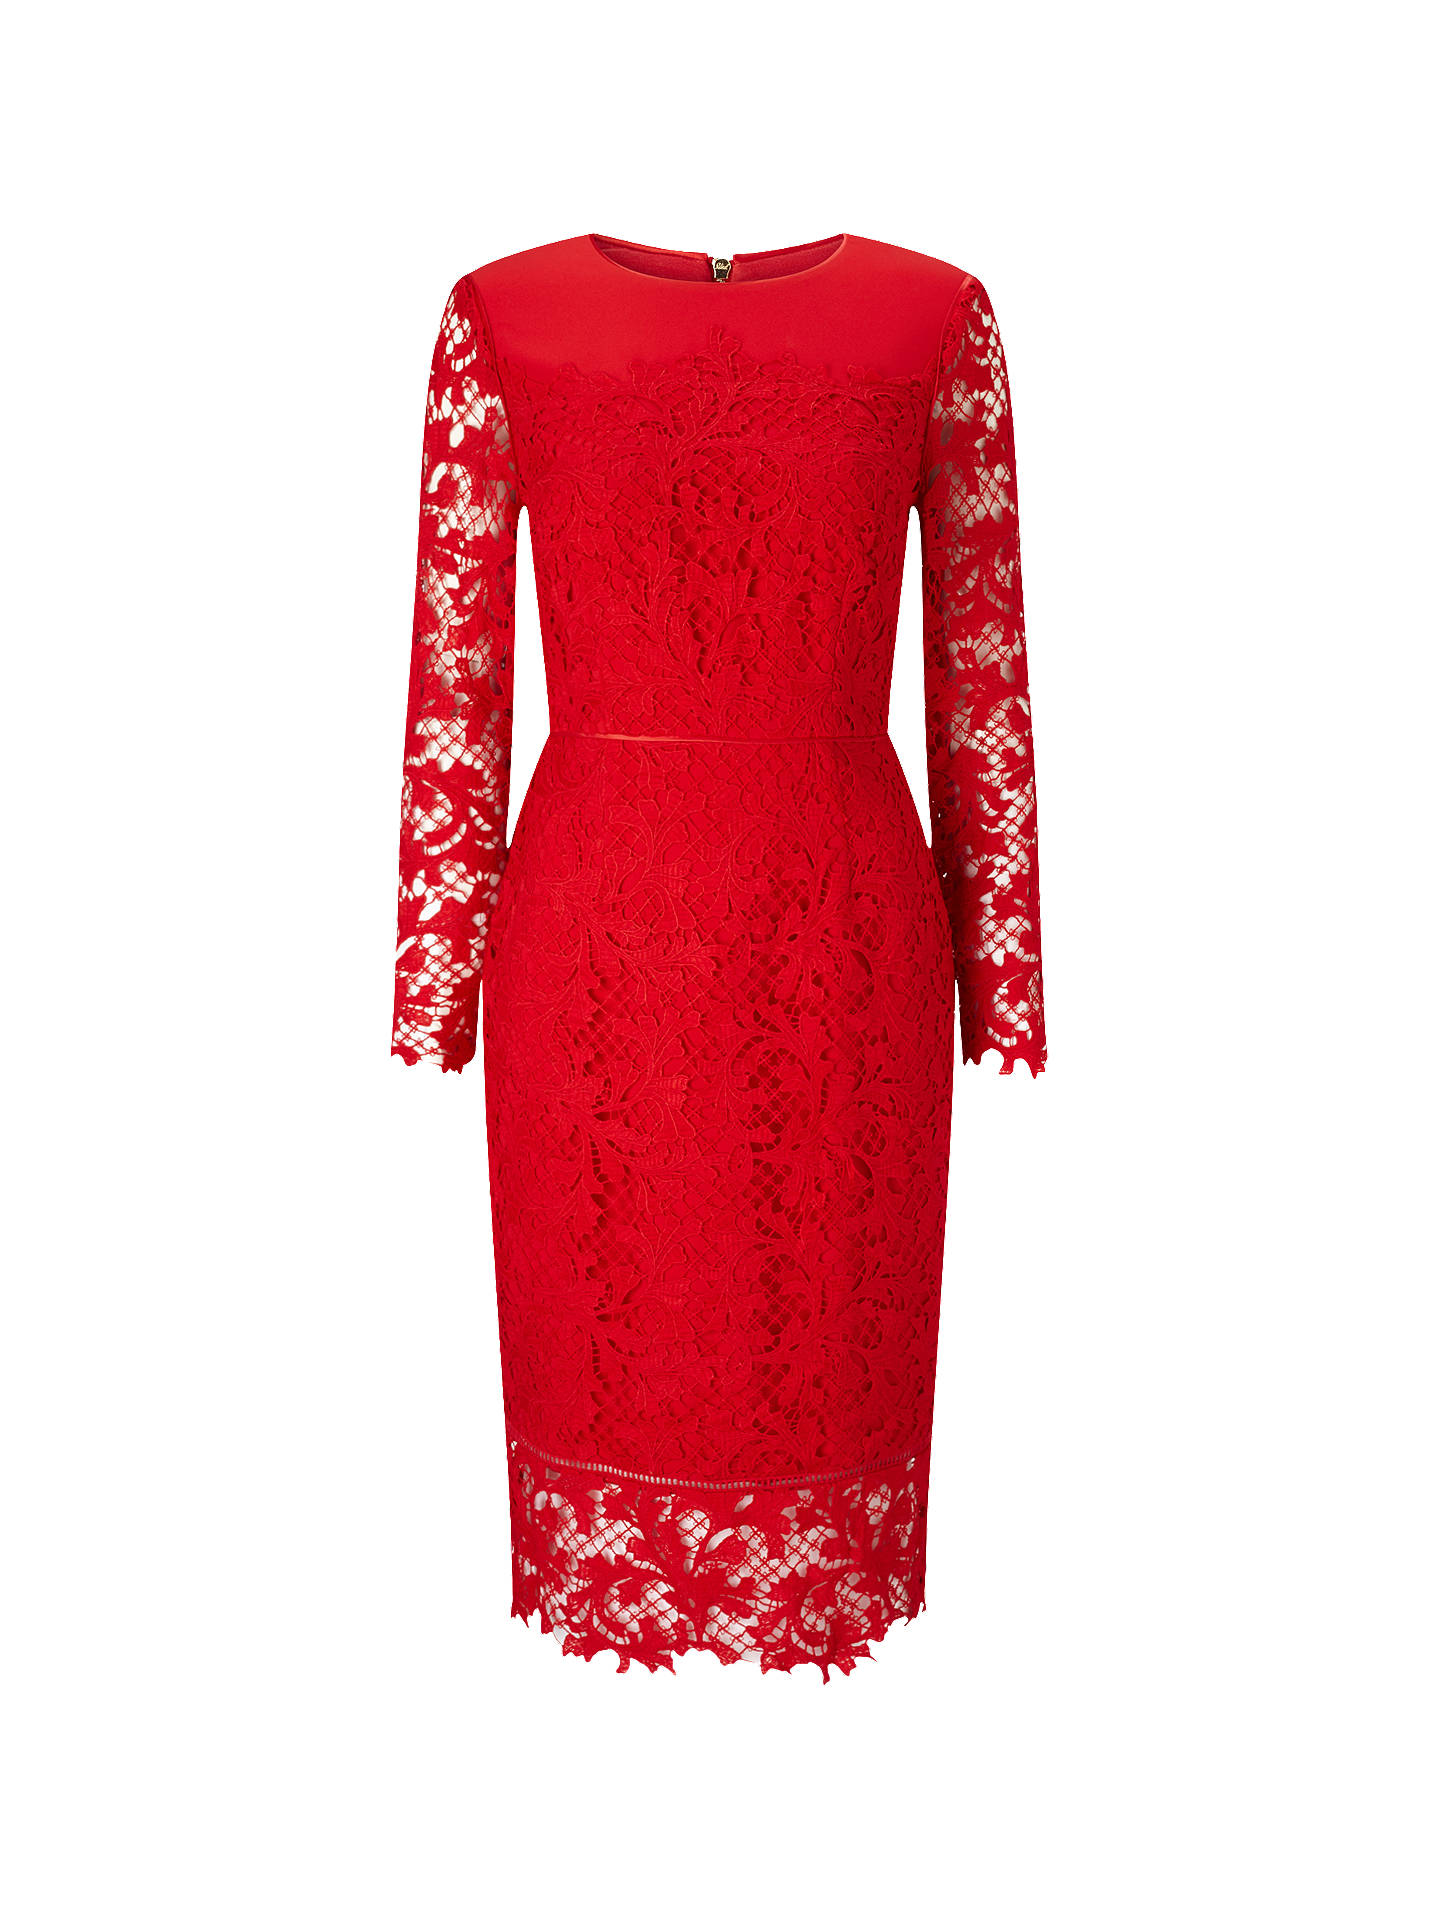 9ea0aa2903abd Phase Eight Amber Lace Dress, Claret at John Lewis & Partners